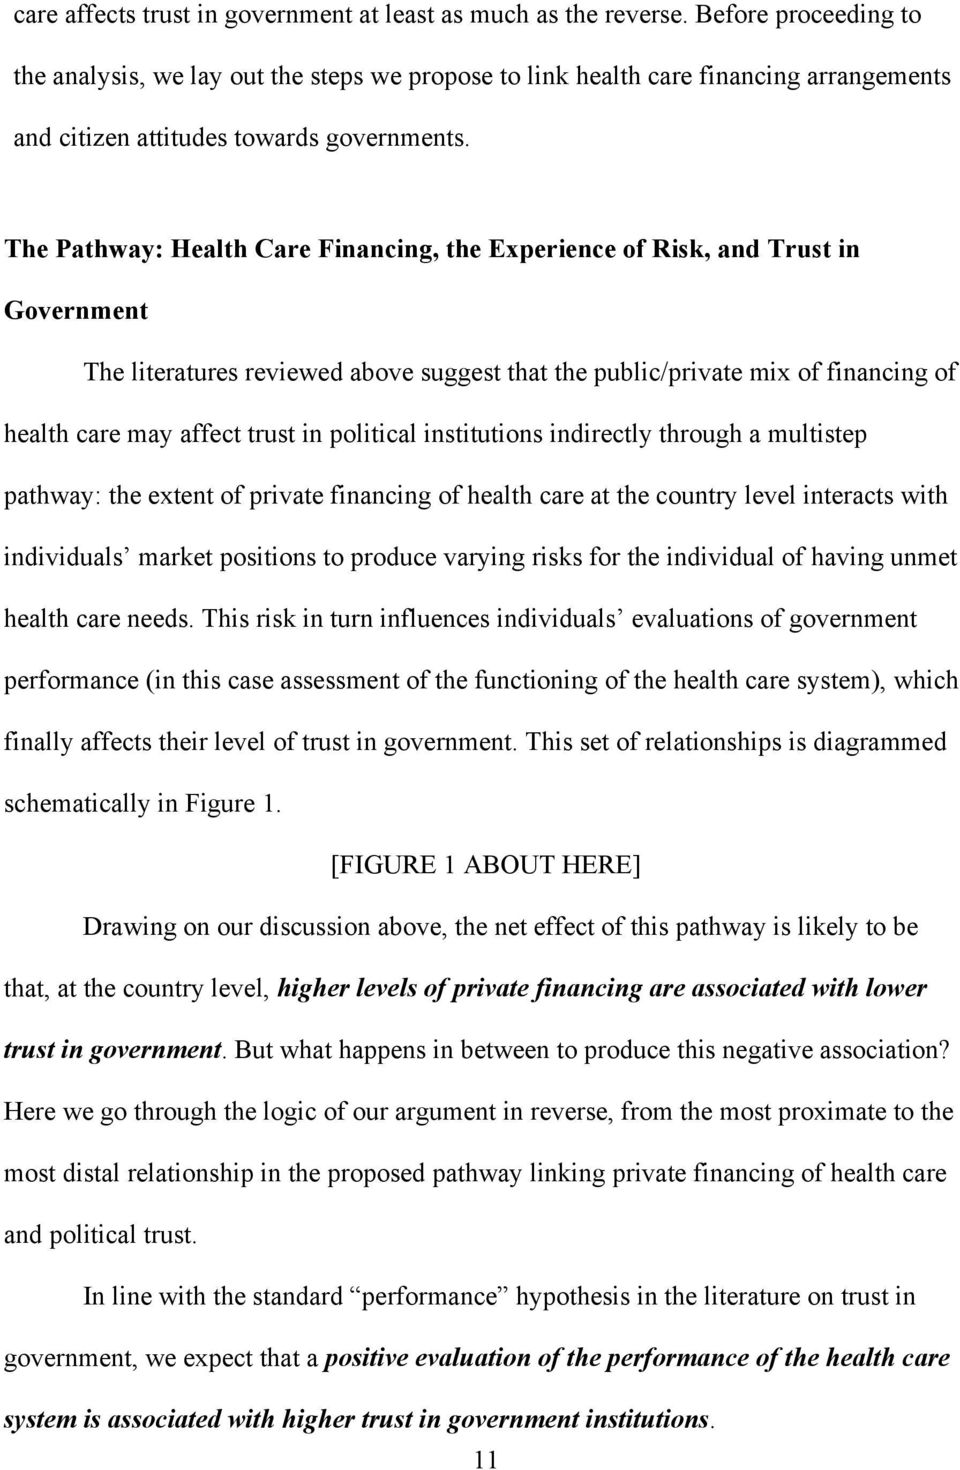 The Pathway: Health Care Financing, the Experience of Risk, and Trust in Government The literatures reviewed above suggest that the public/private mix of financing of health care may affect trust in